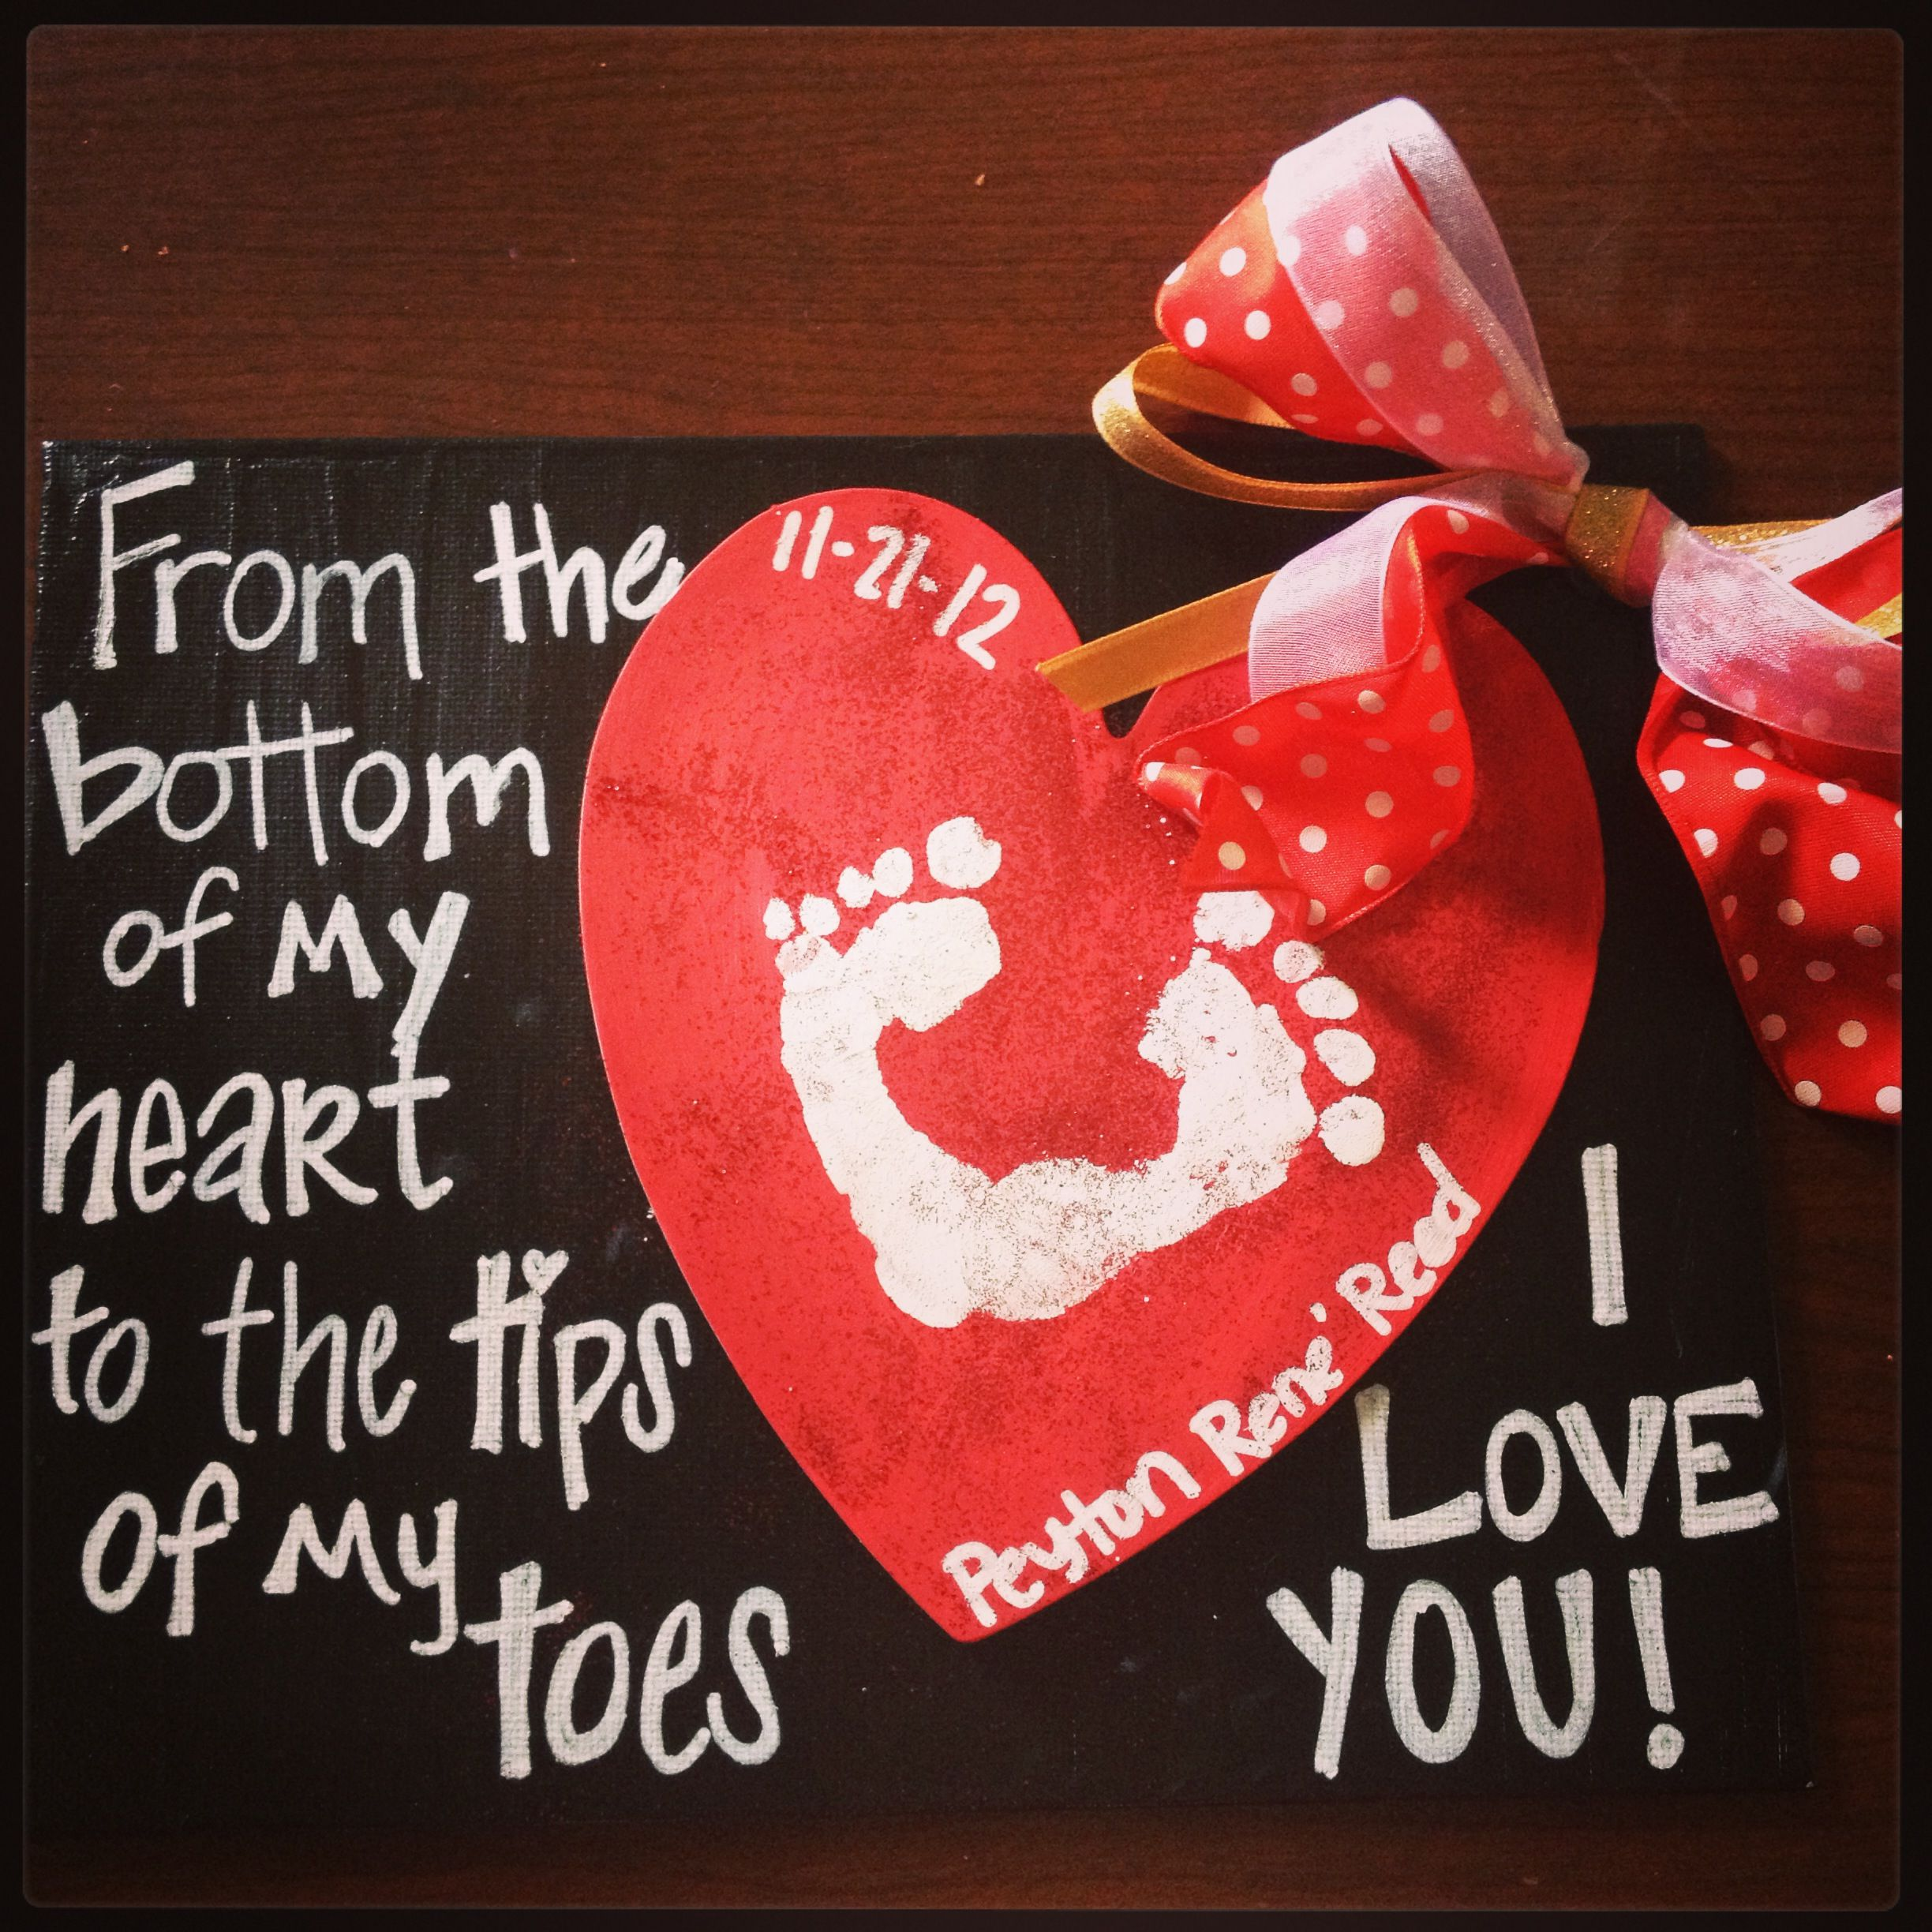 Fun valentines day crafts - Baby Footprint Craft This Would Be So Cute For Valentines Day Or Fathers